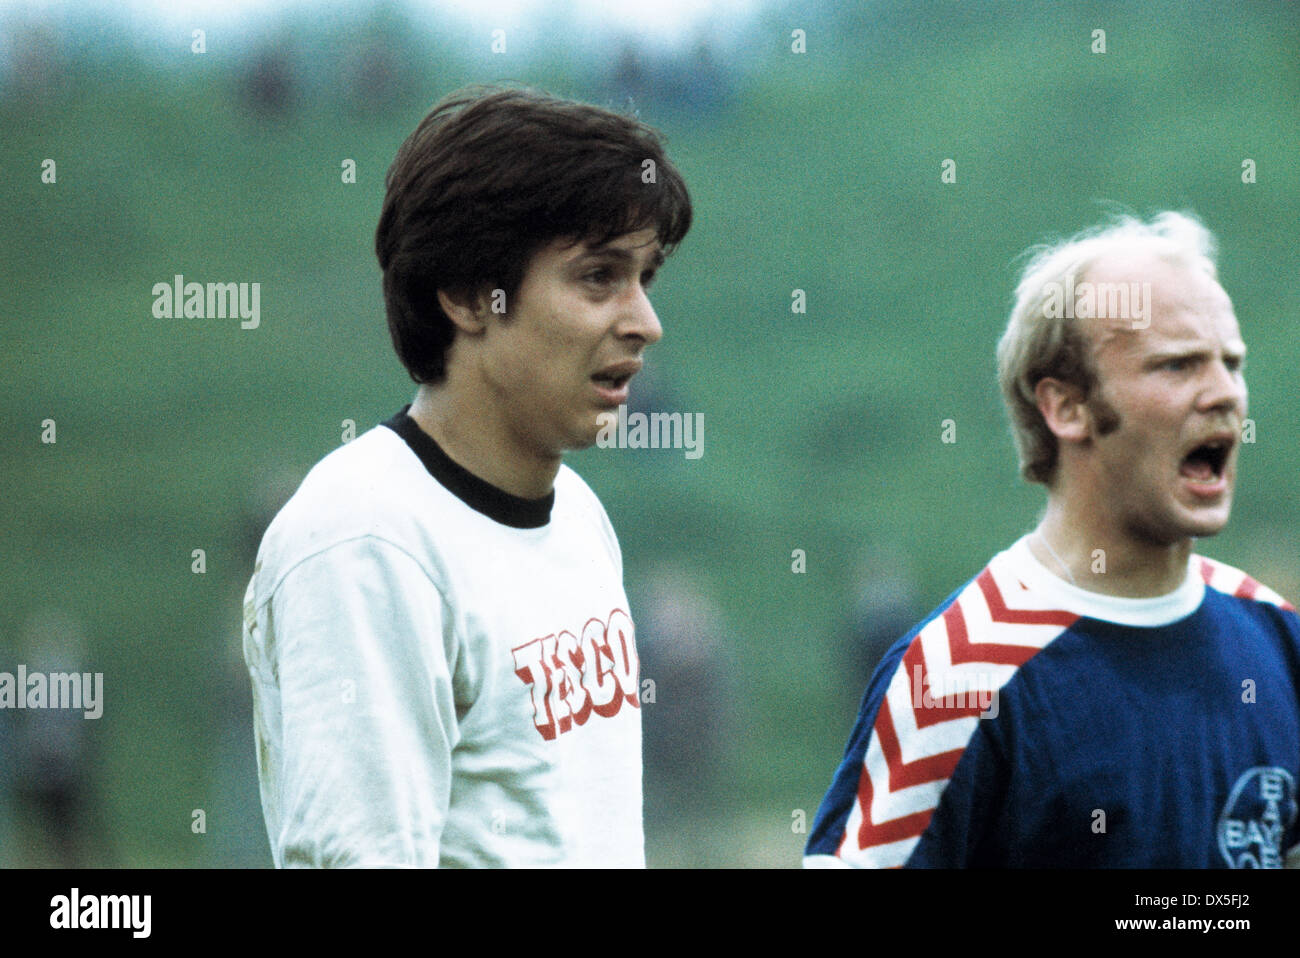 football, 2. Bundesliga Nord, 1974/1975, Stadium am Uhlenkrug, ETB Schwarz Weiss Essen versus FC Bayer 05 Uerdingen 1:2, scene of the match, Holger Trimhold (ETB) left and Lothar Prehn (Bayer) - Stock Image